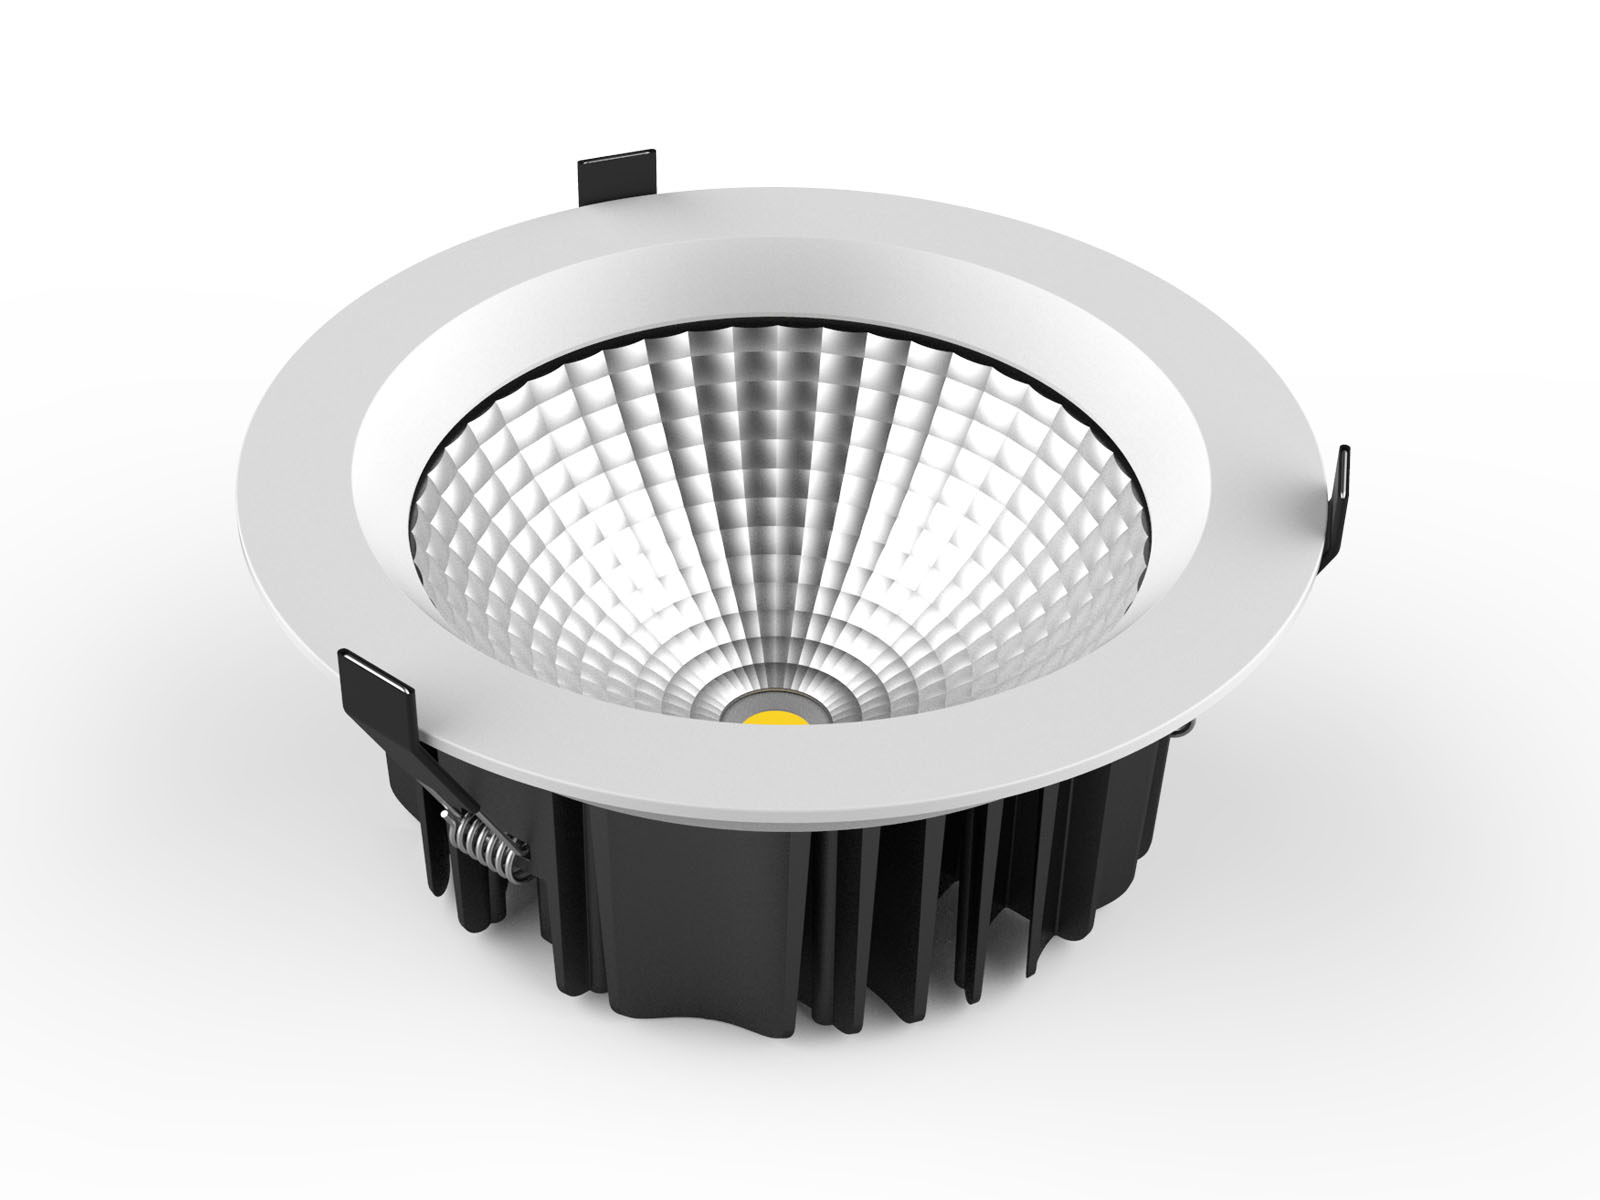 High Quality DL22 1 compatible led downlights